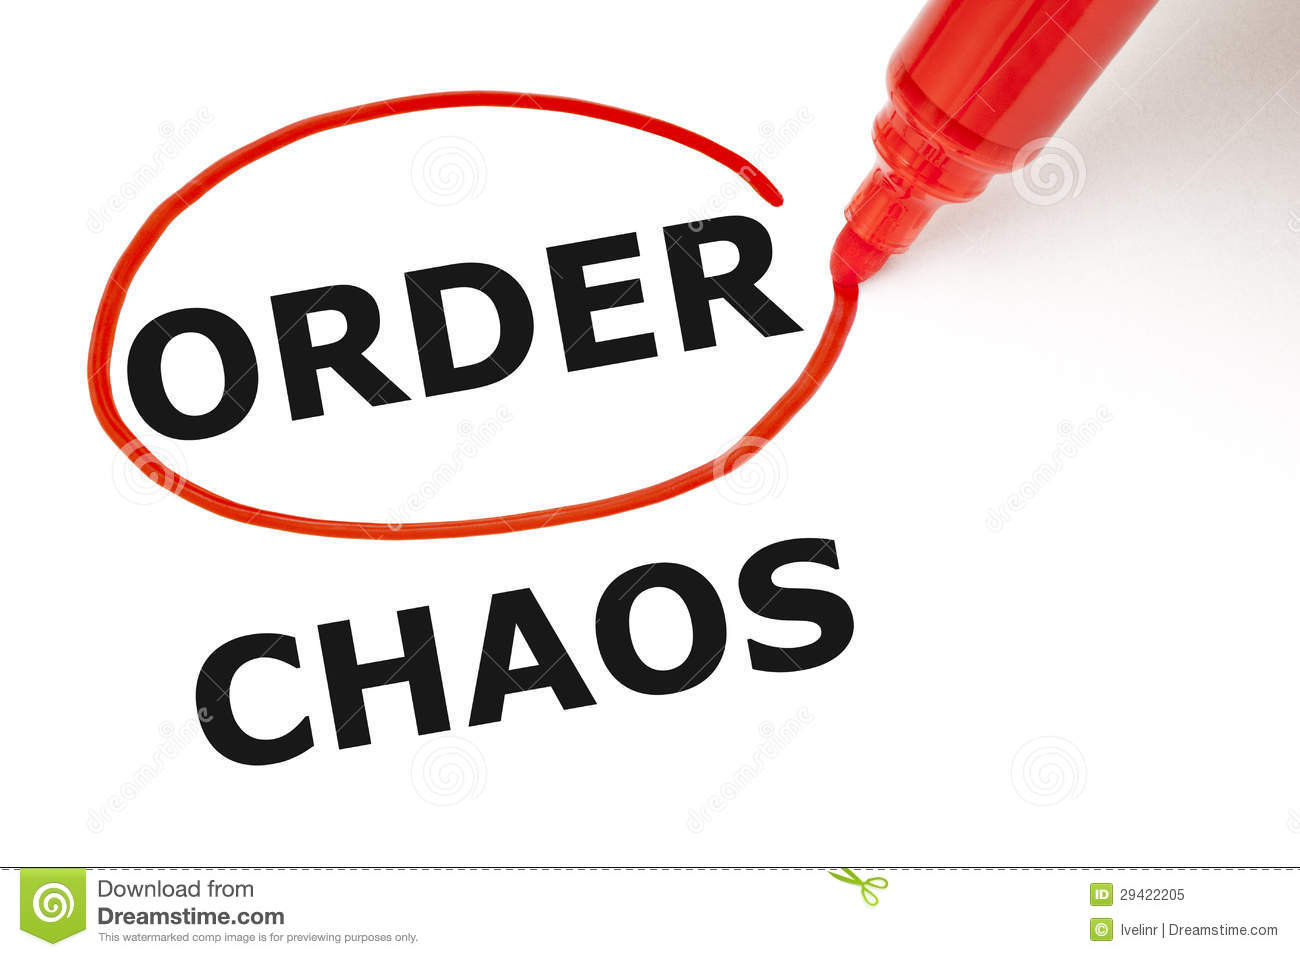 order or chaos stock image image of choose, chaos, management Order From choosing order instead of chaos order selected with red marker